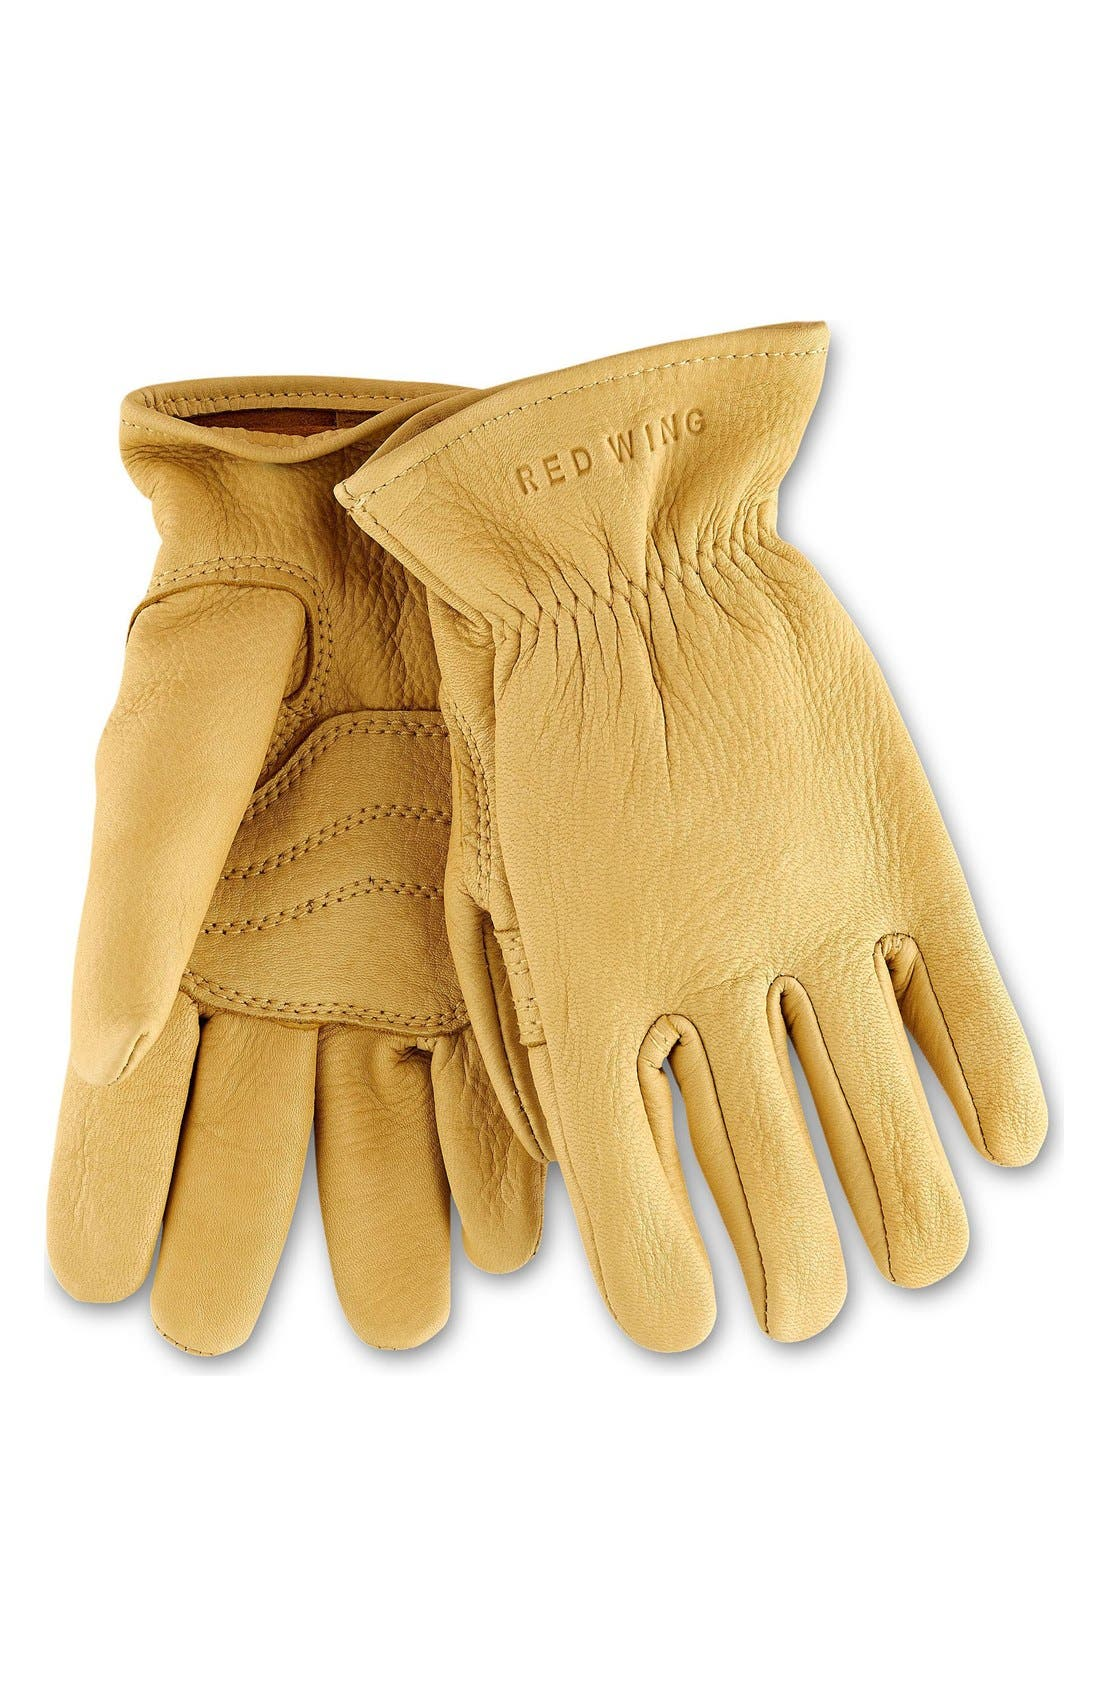 RED WING Buckskin Leather Gloves, Main, color, 700